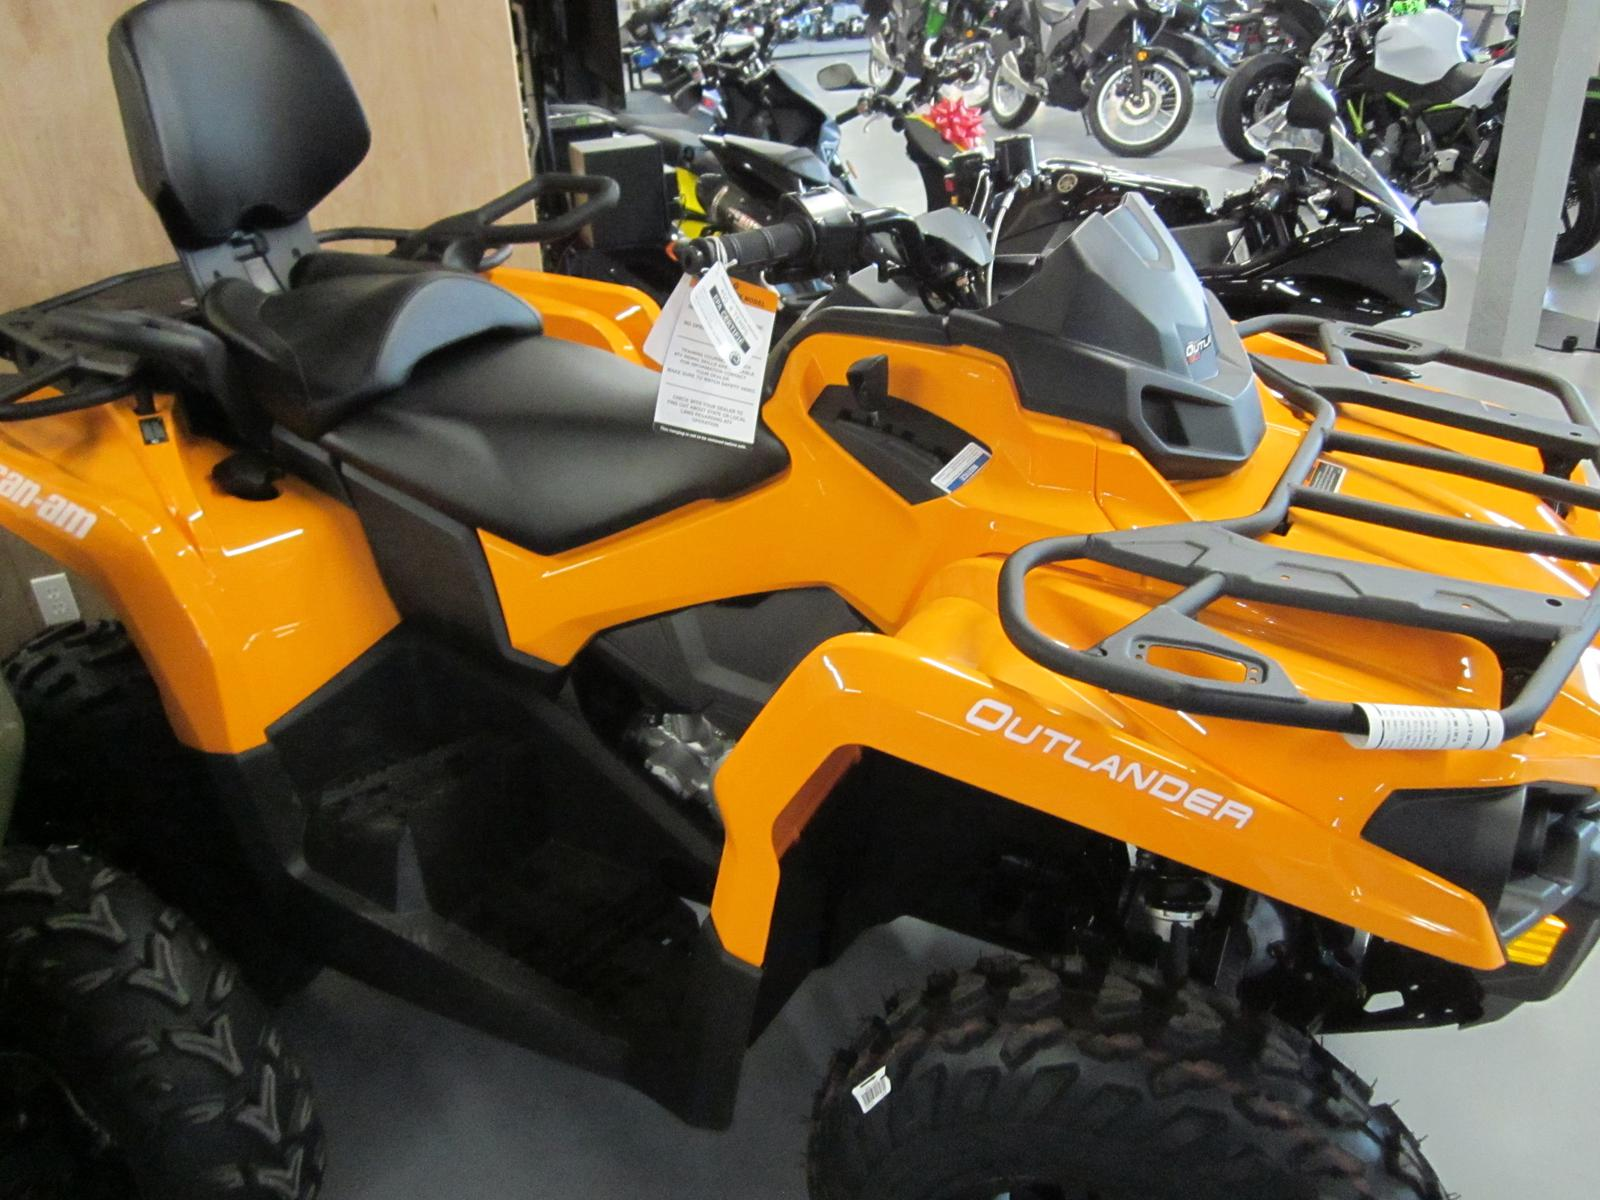 2018 Can Am OUTLANDER MAX 450 DP for sale in Hendersonville NC Dal